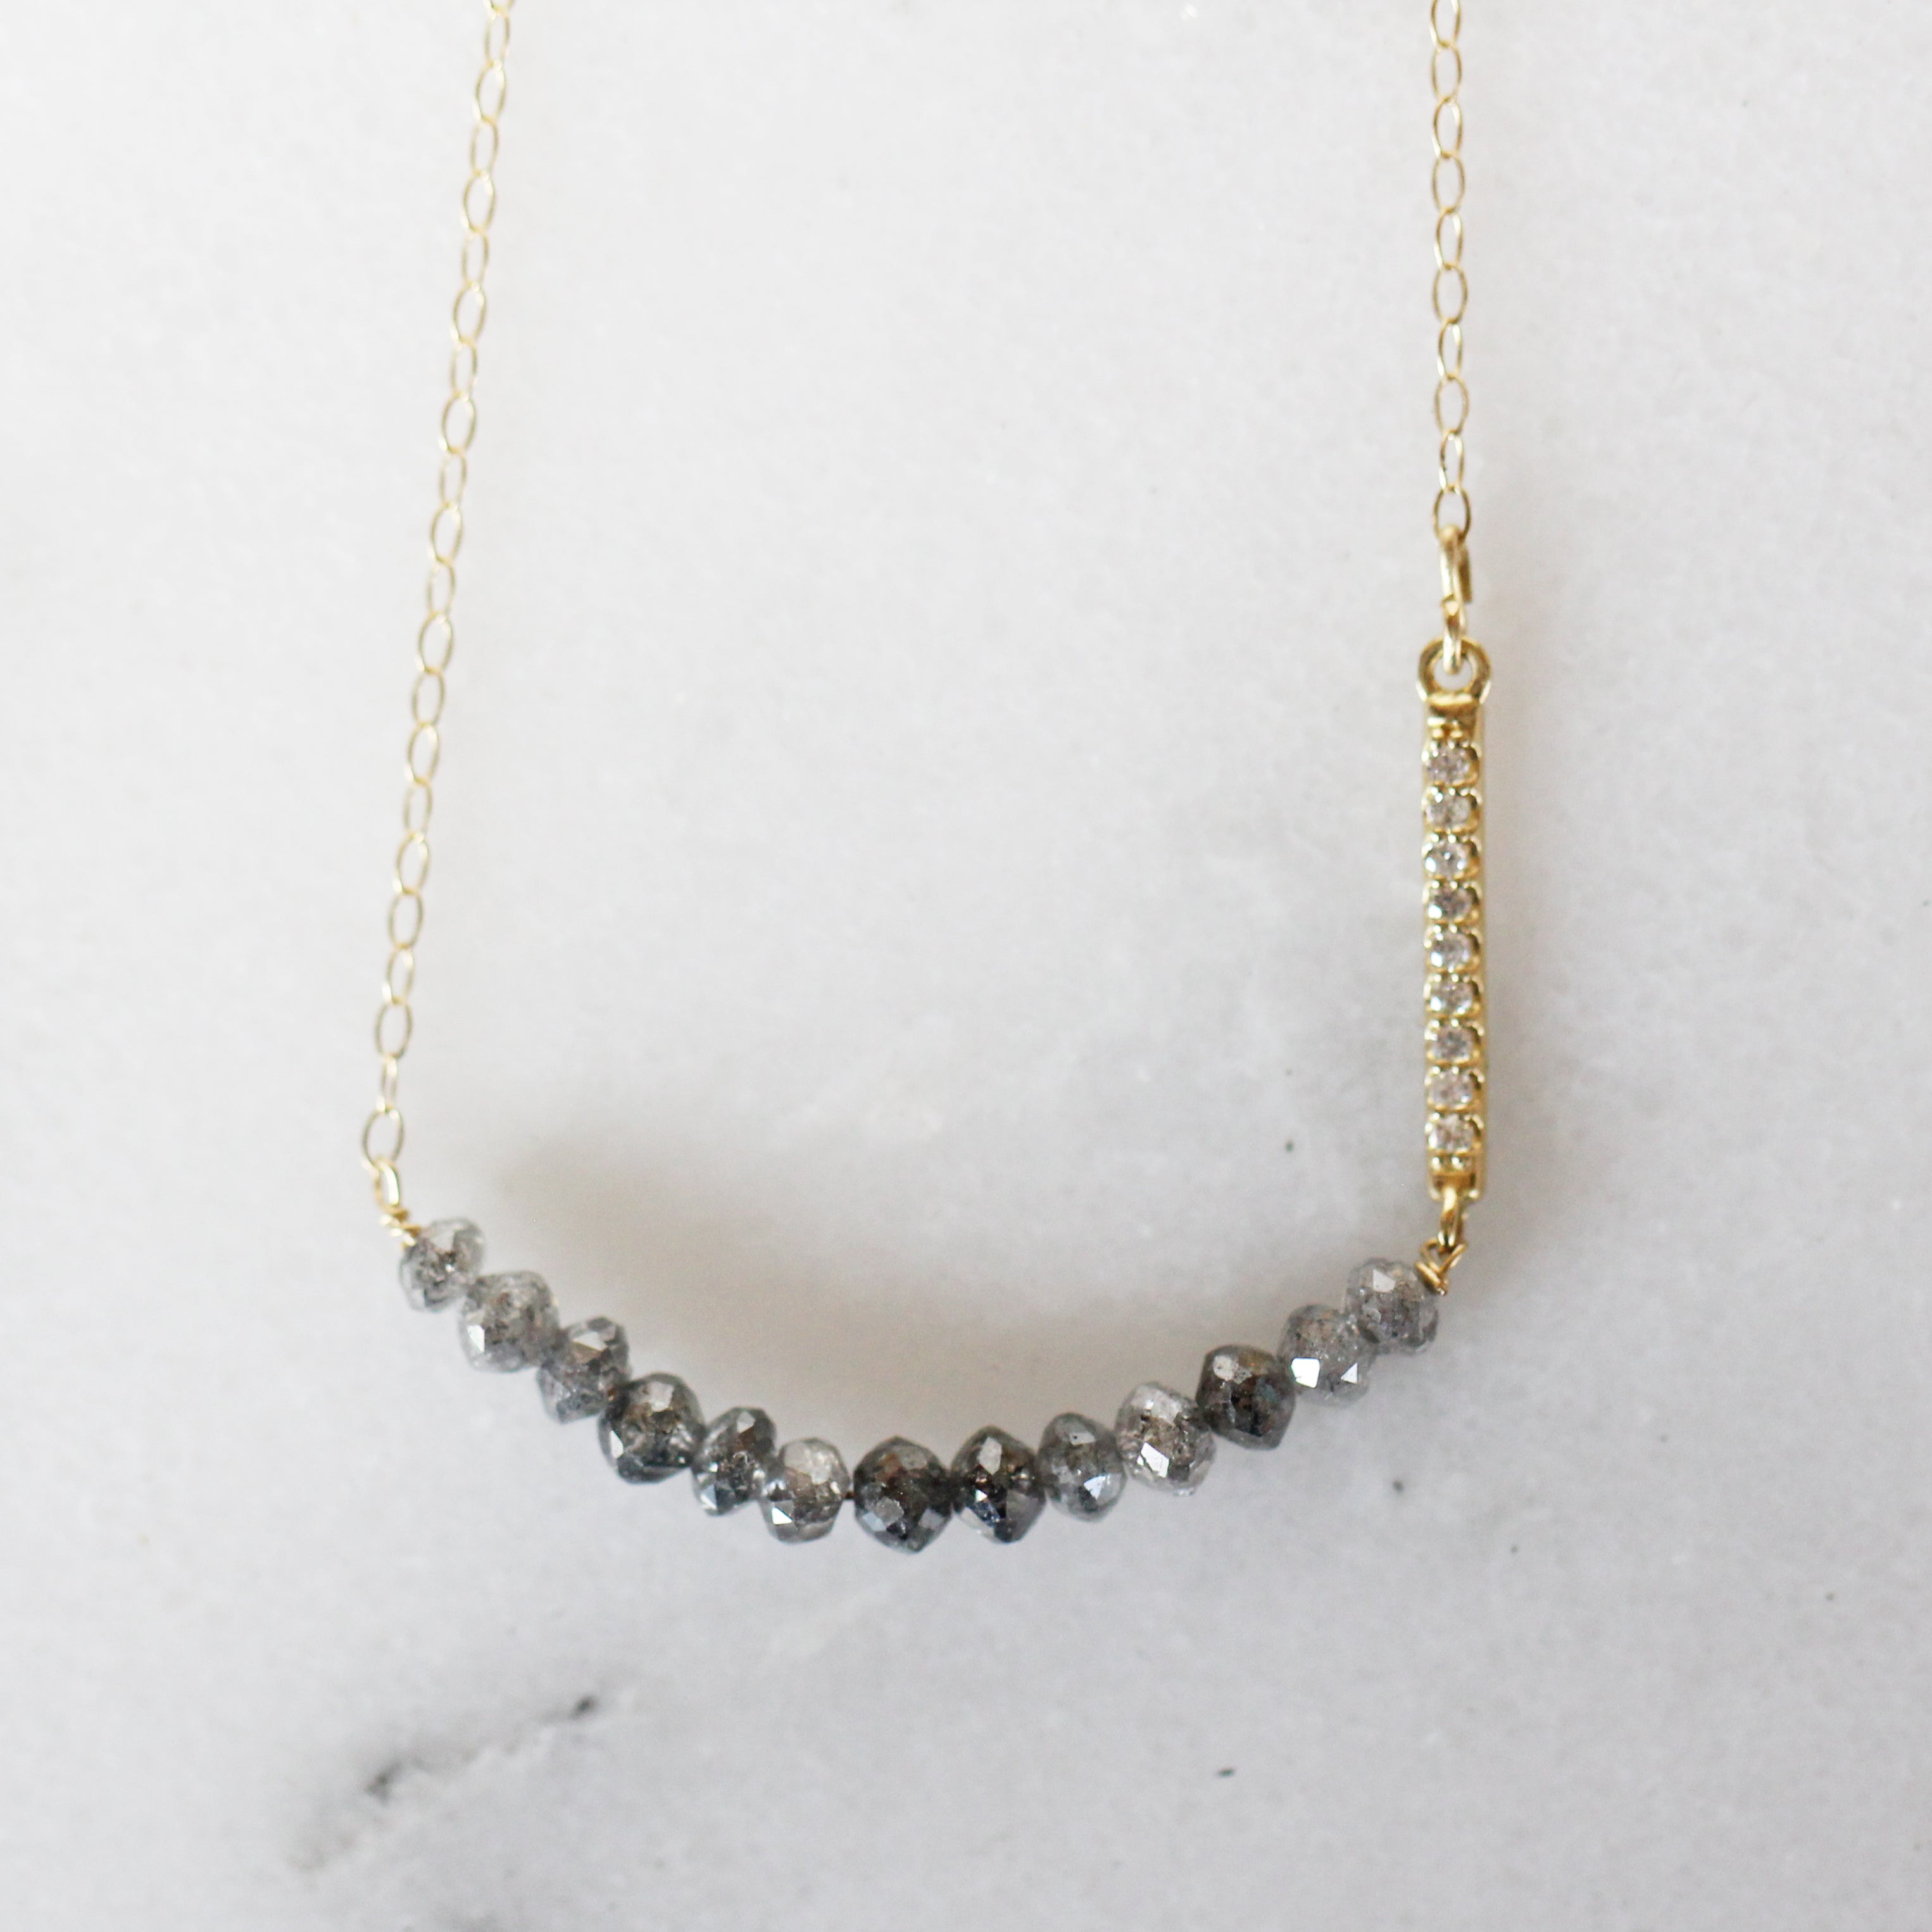 Brielle - Celestial and Clear Diamond in 14k Yellow Gold Necklace - Ready to Ship - Midwinter Co. Alternative Bridal Rings and Modern Fine Jewelry